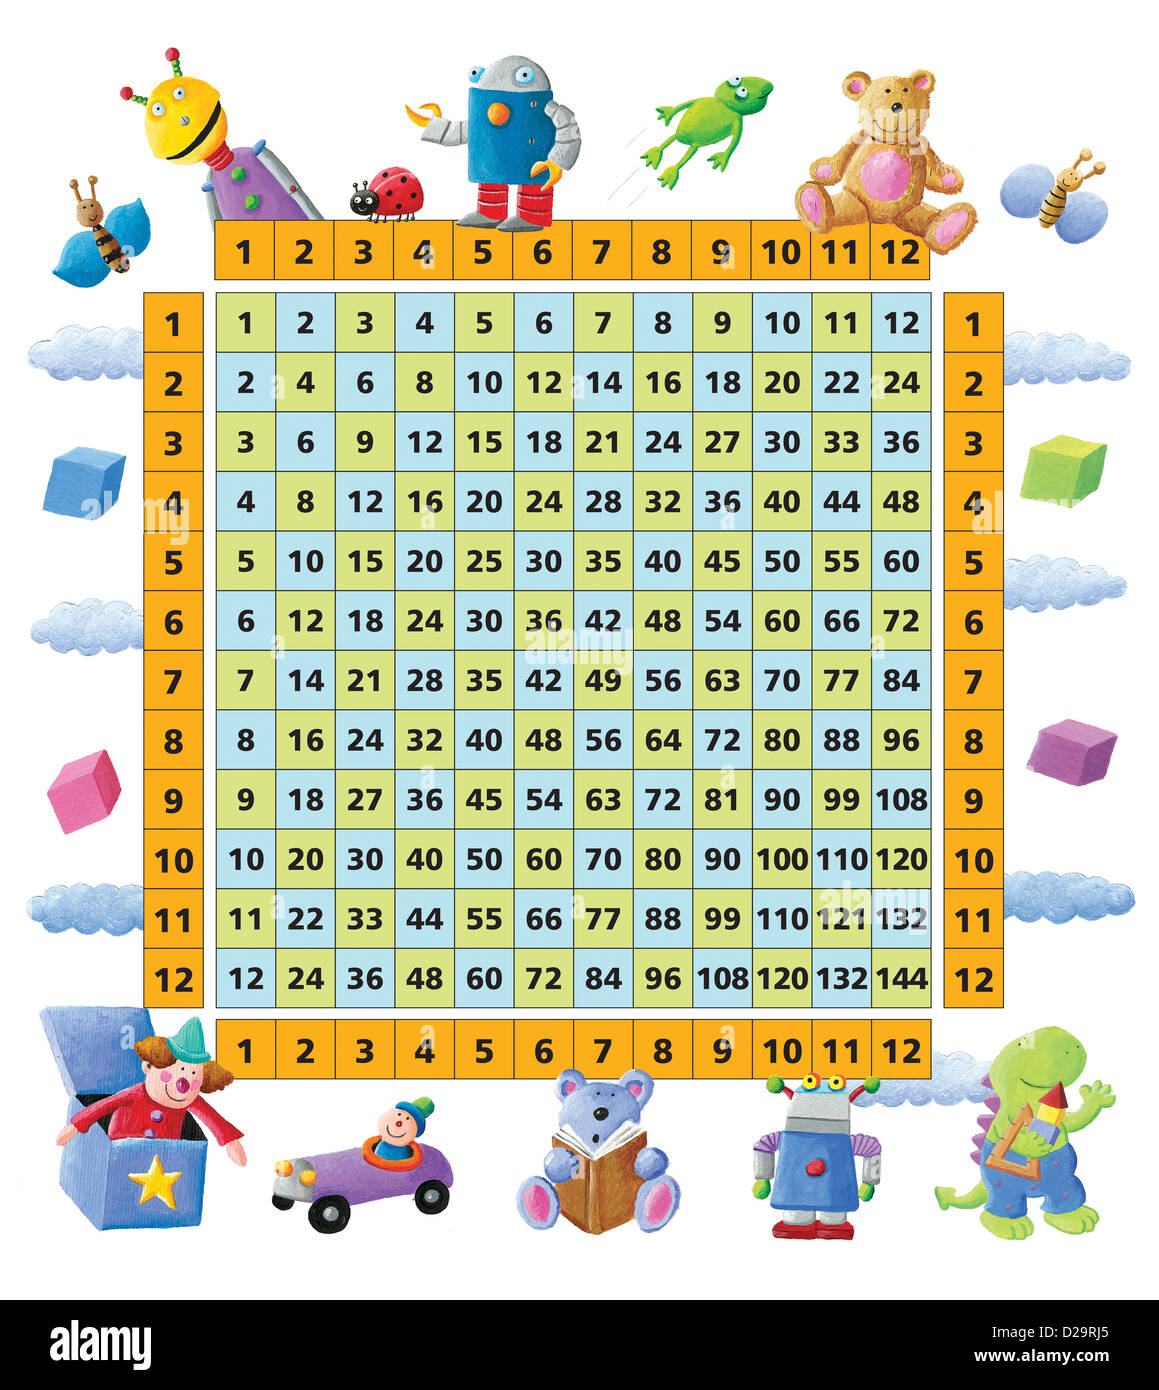 Funny Multiplication Table Stock Photos Amp Funny Multiplication Table Stock Images